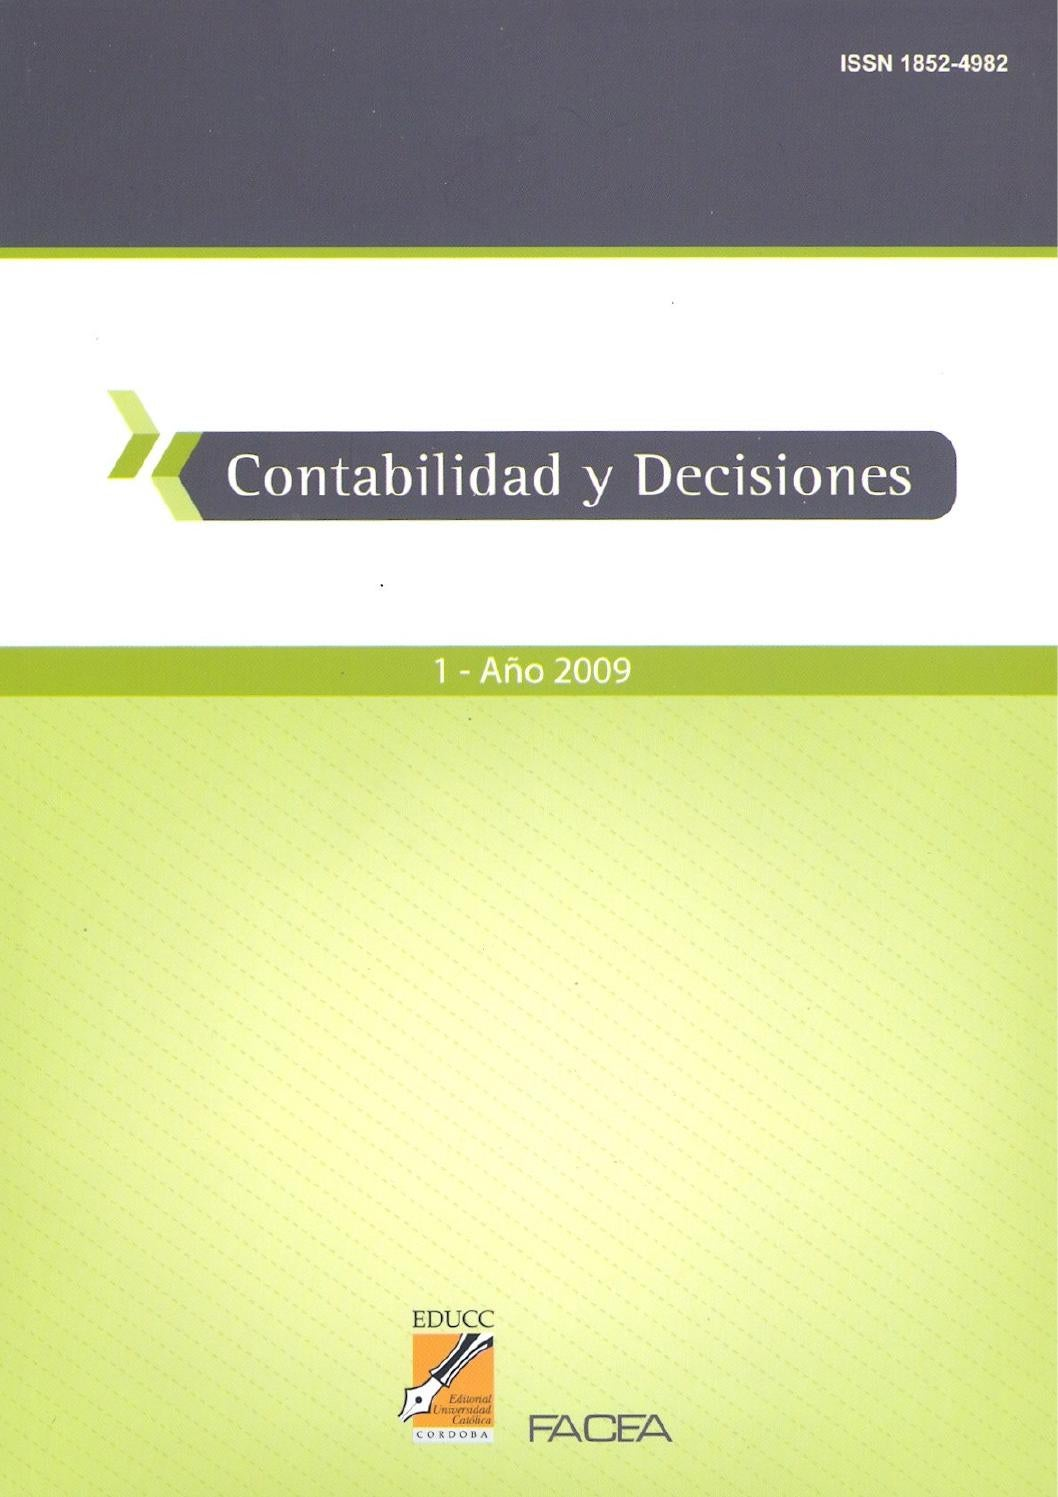 Contabilidad y Decisiones Nro. 1 by contabilidad.decisiones - issuu